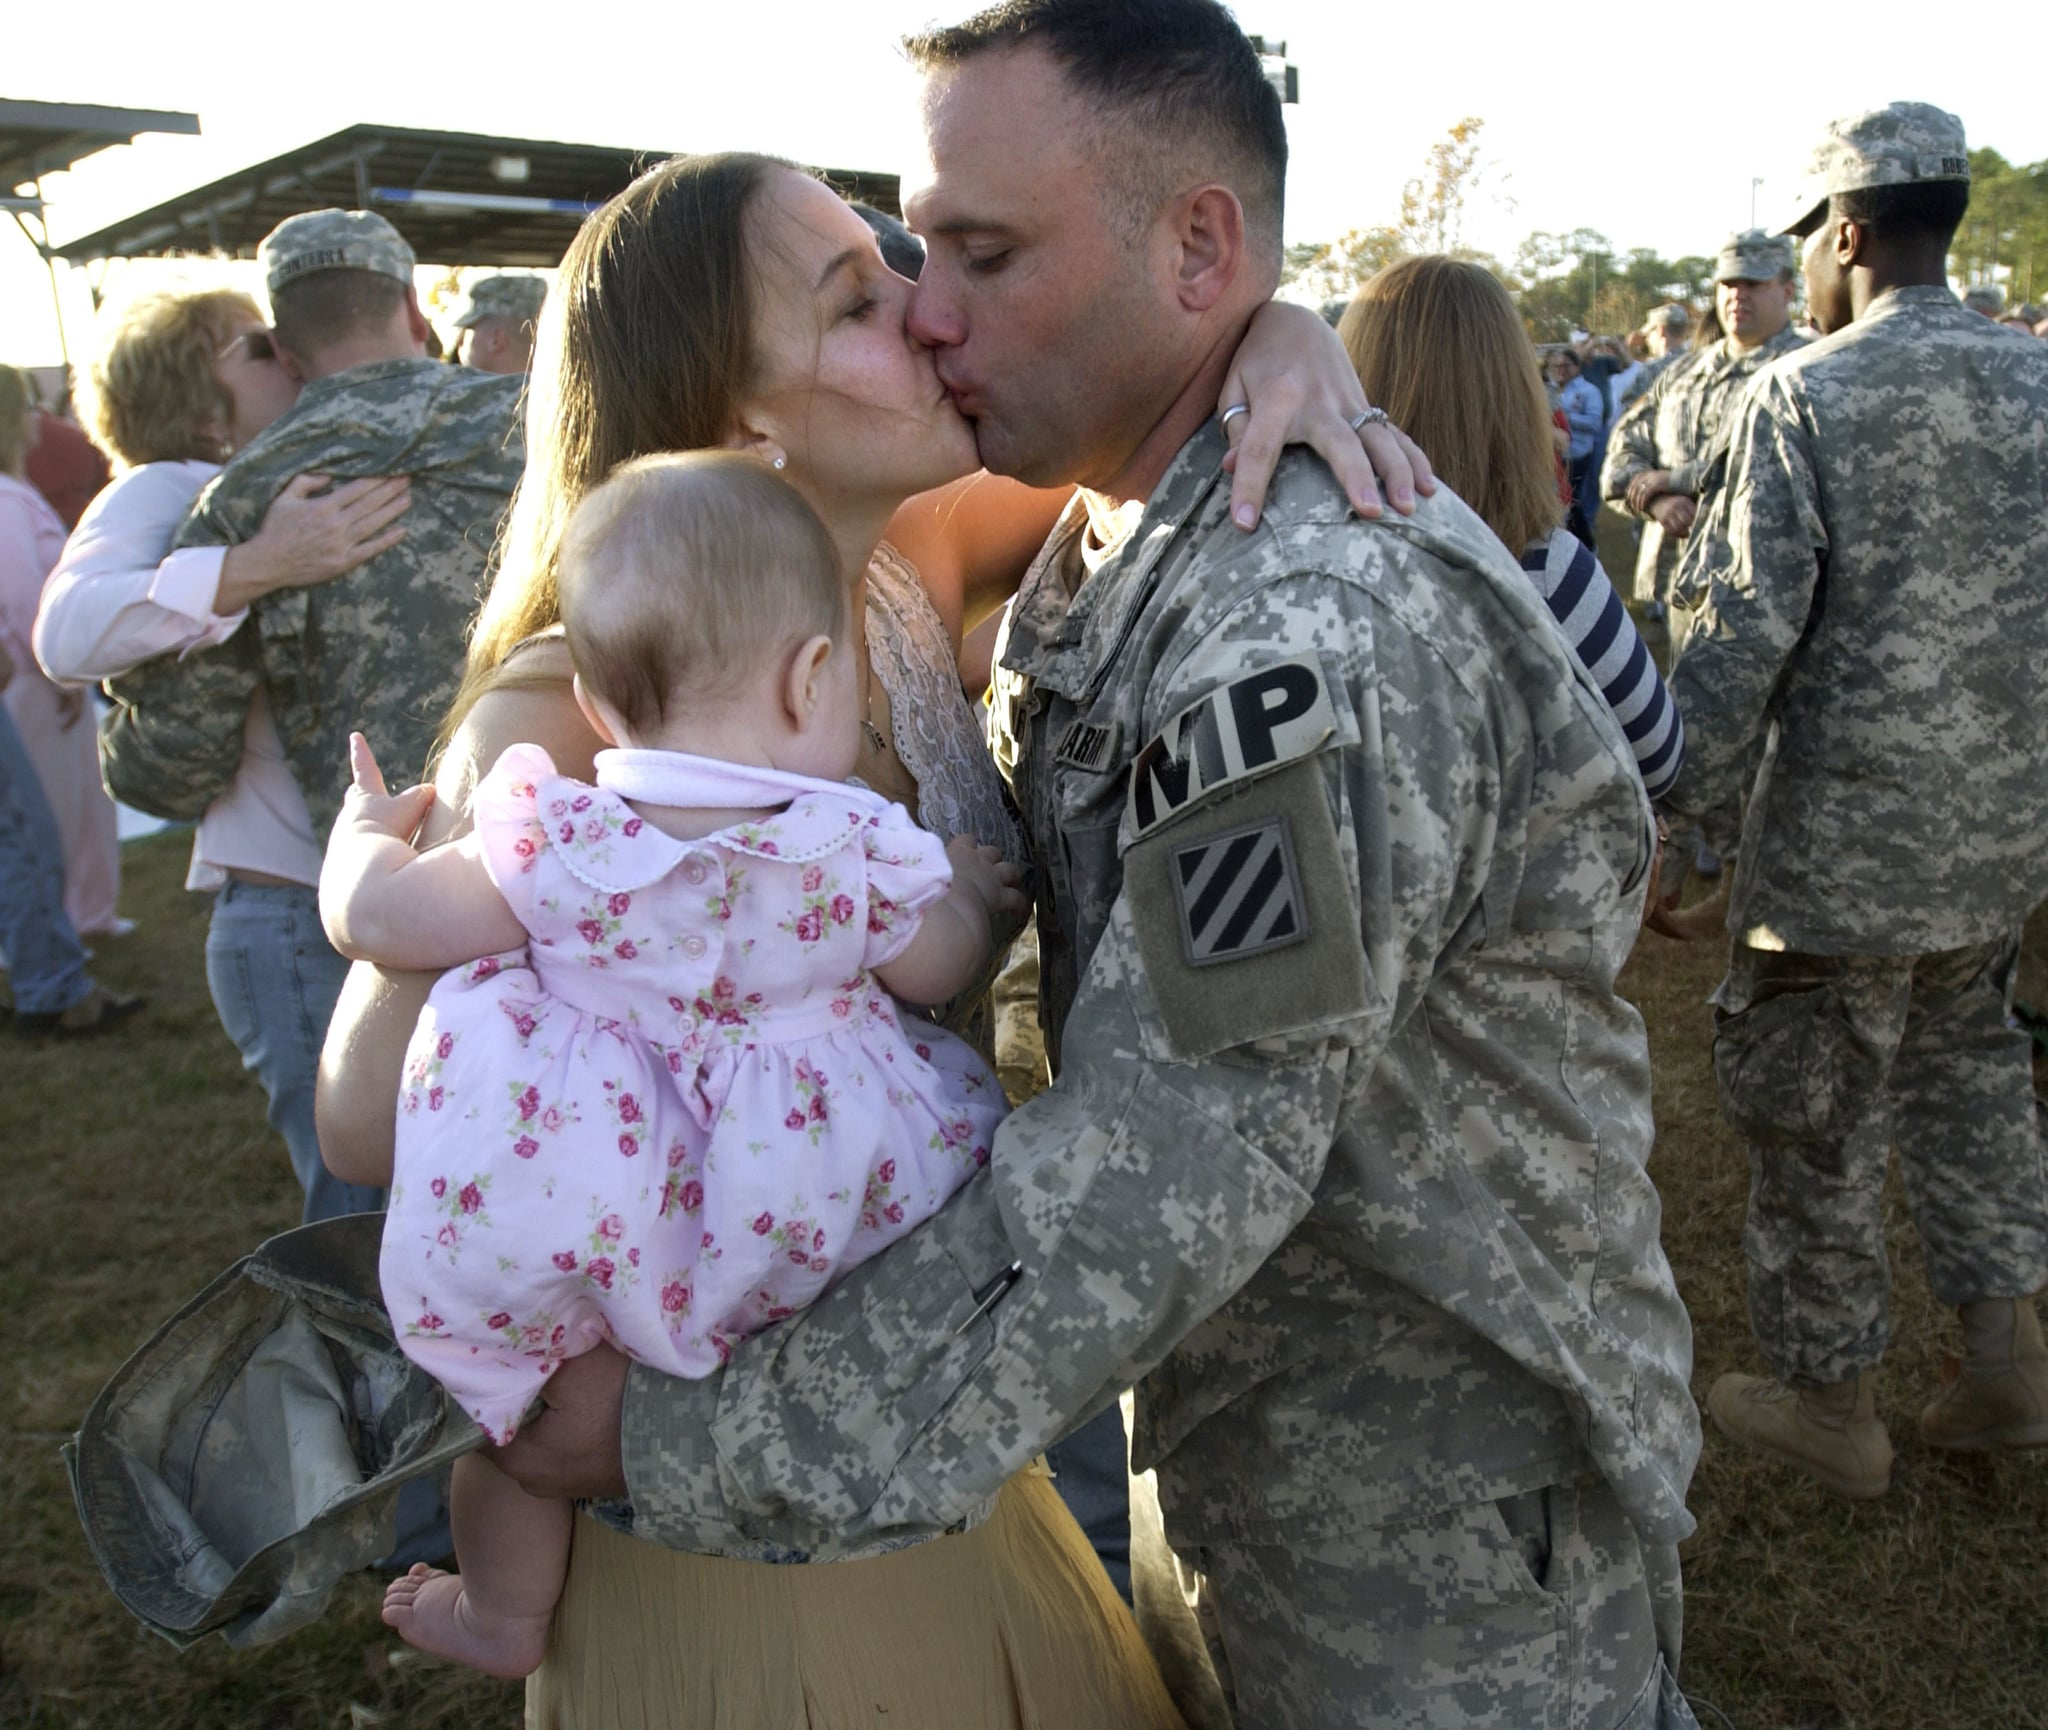 US Army Staff Sgt. Davis Wolfe kisses his wife, Kristine, and greets his 13-month-old daughter, Faith, in 2006.